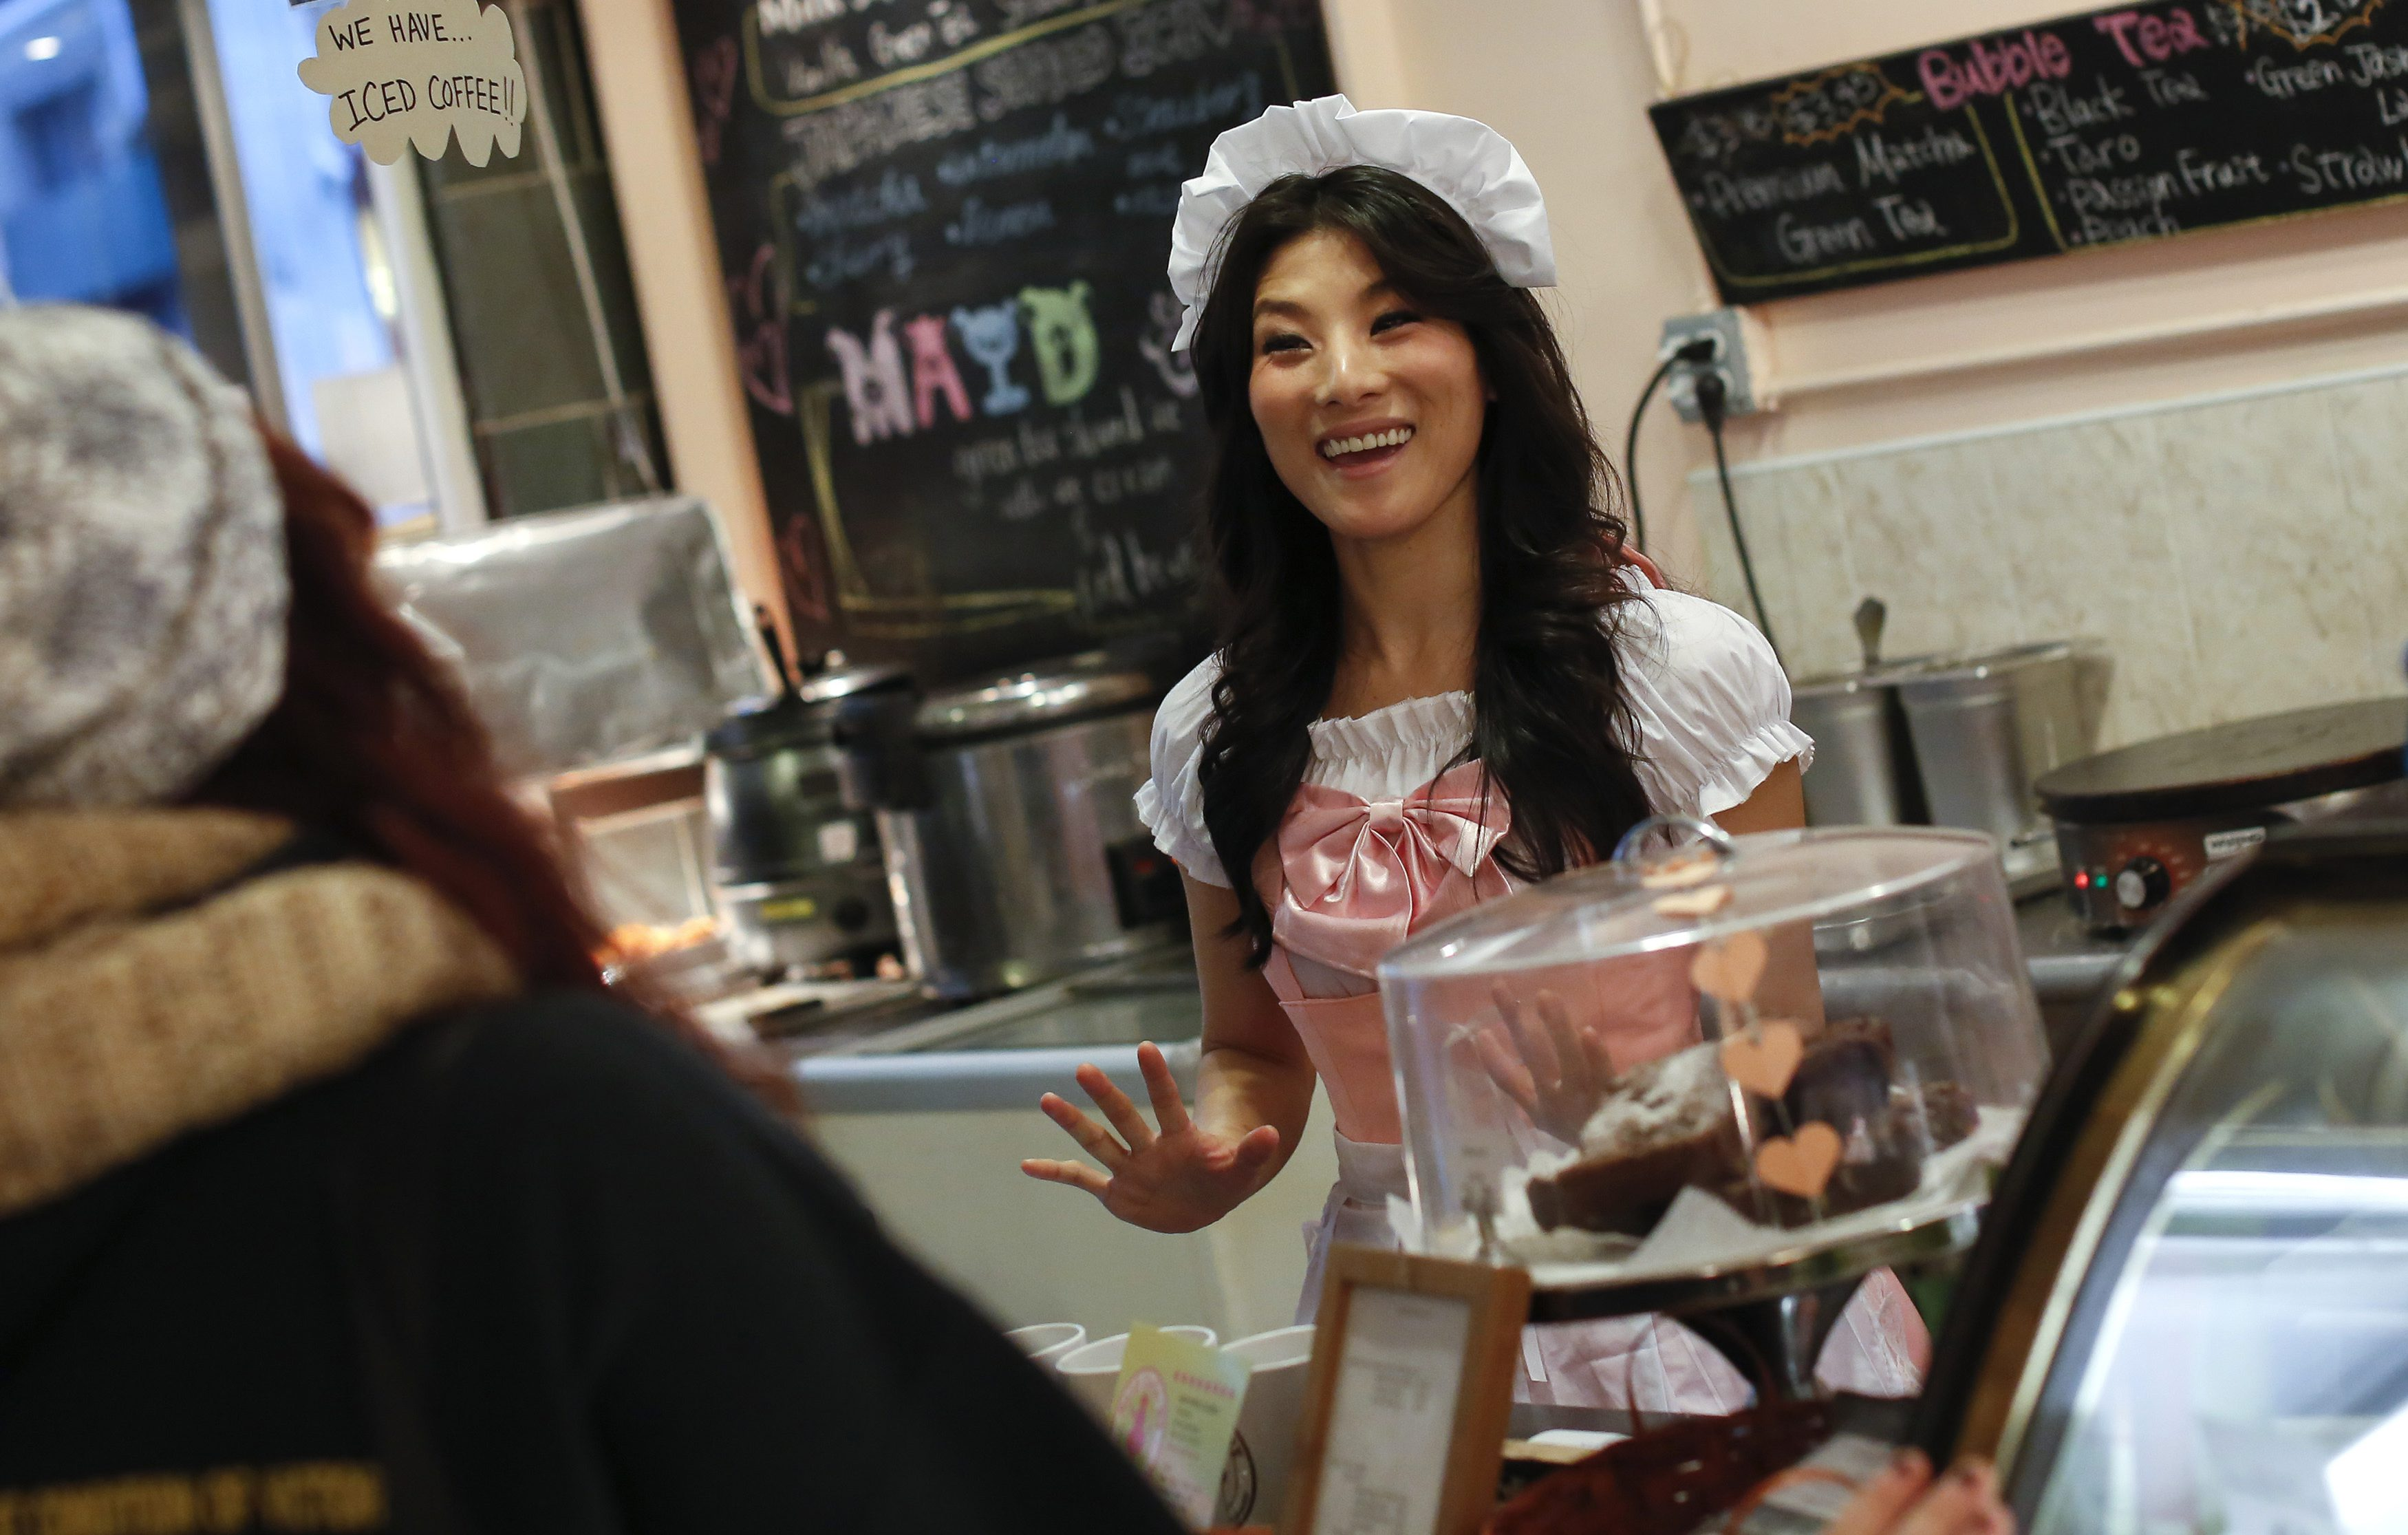 Reni Mimura, a waitress at the Maid Cafe New York, speaks with customers in New York November 20, 2013.